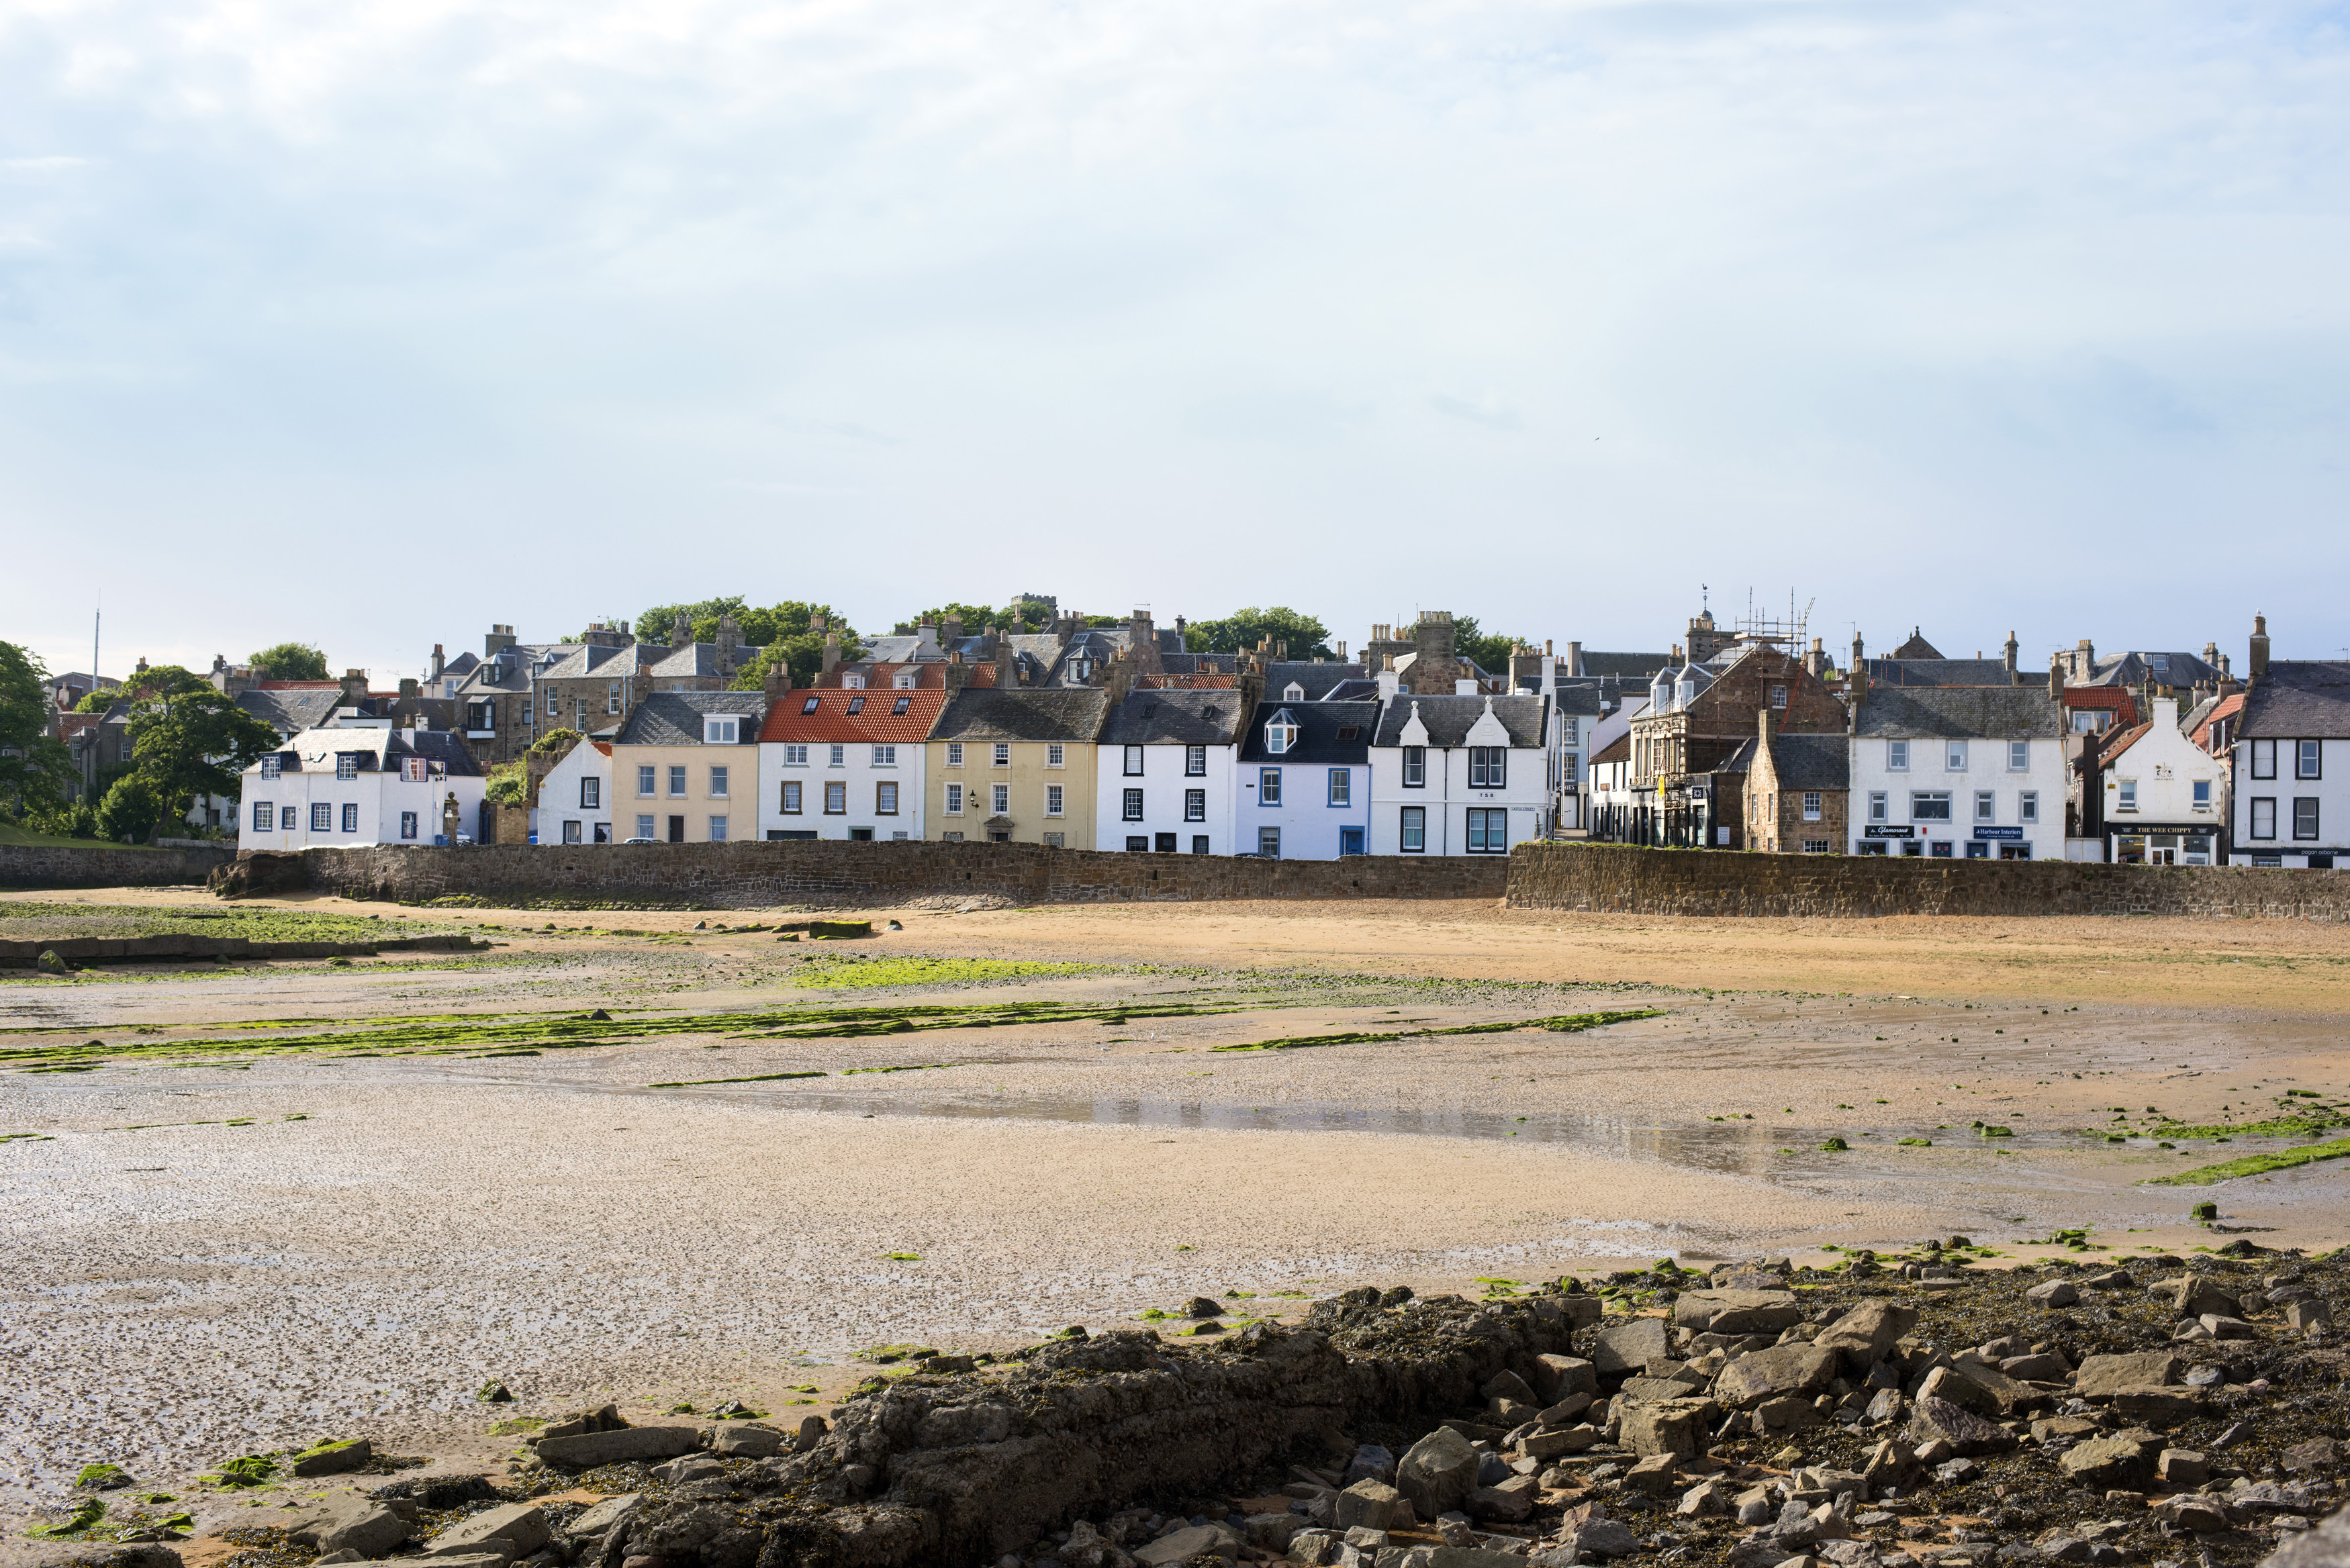 Free Stock photo of Anstruther fishing cottages | Photoeverywhere